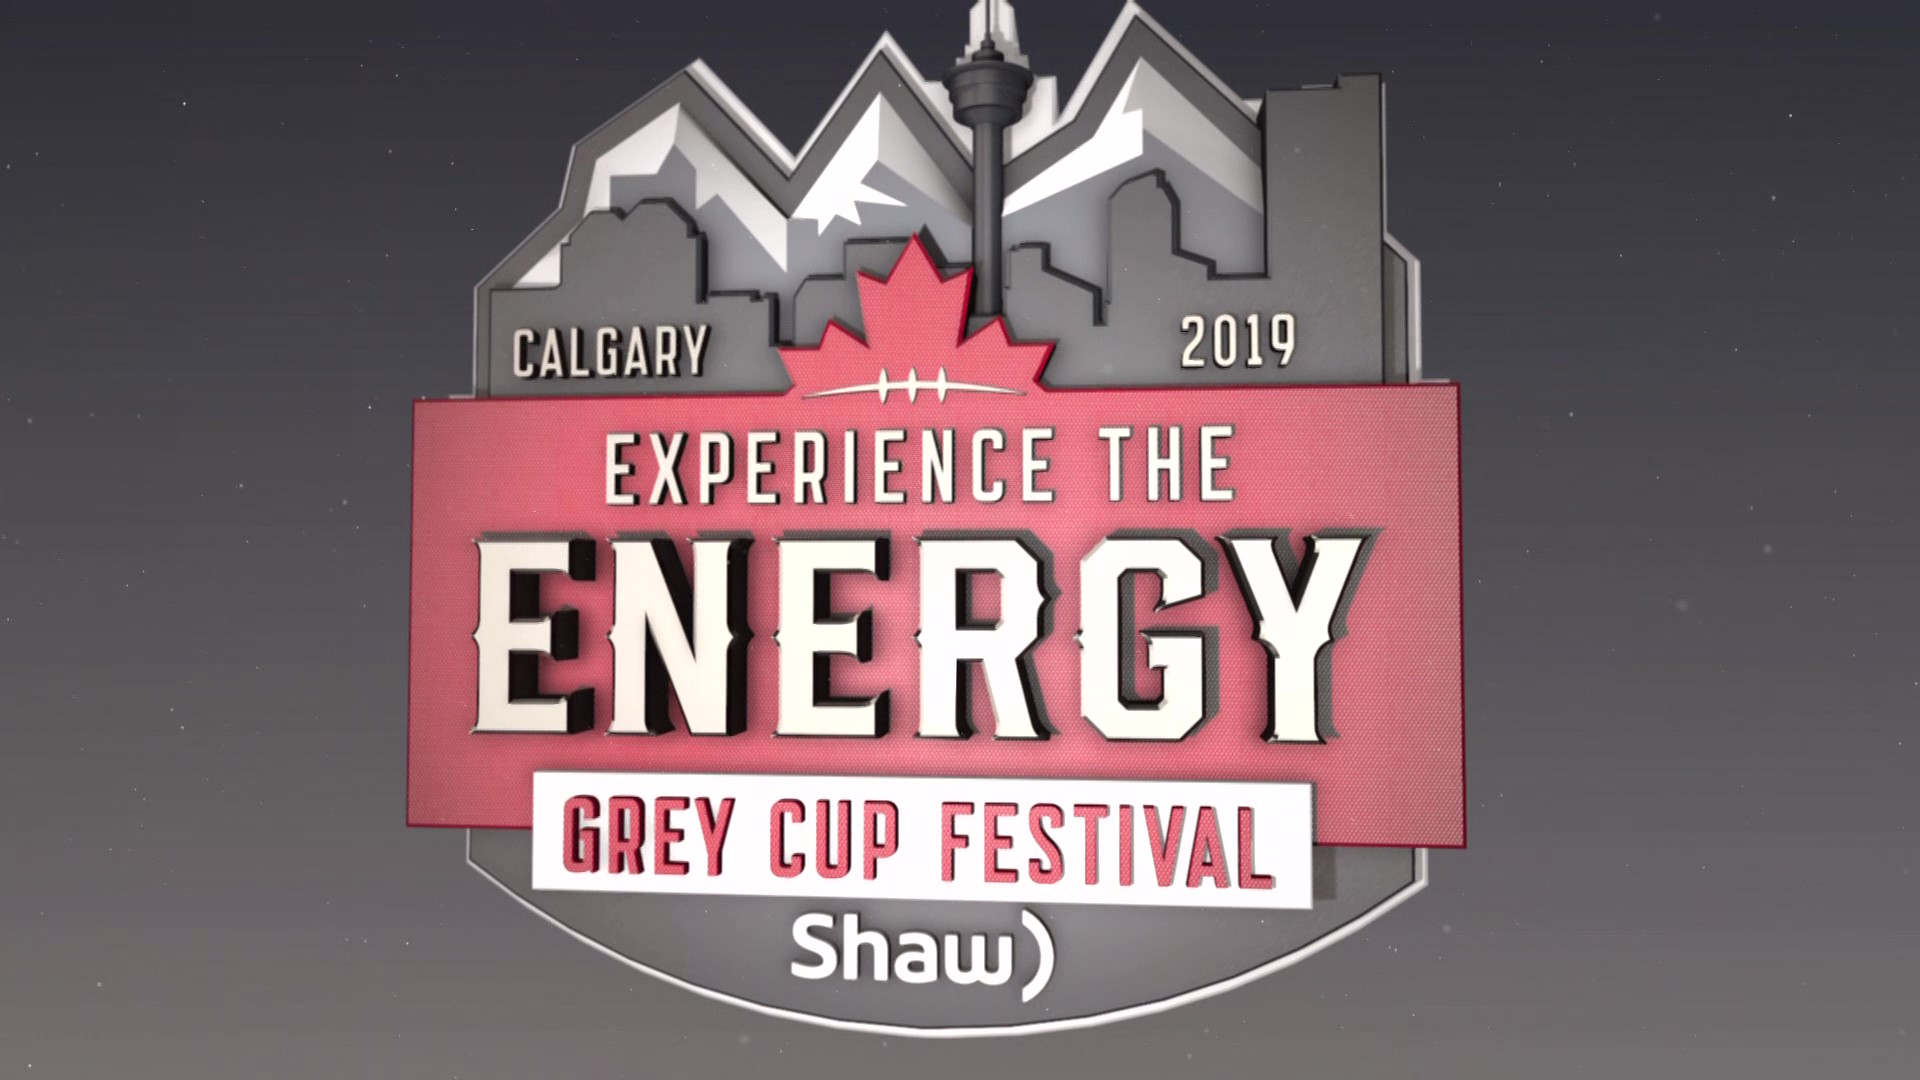 The 2019 Grey Cup Logo - 107th Grey Cup Festival